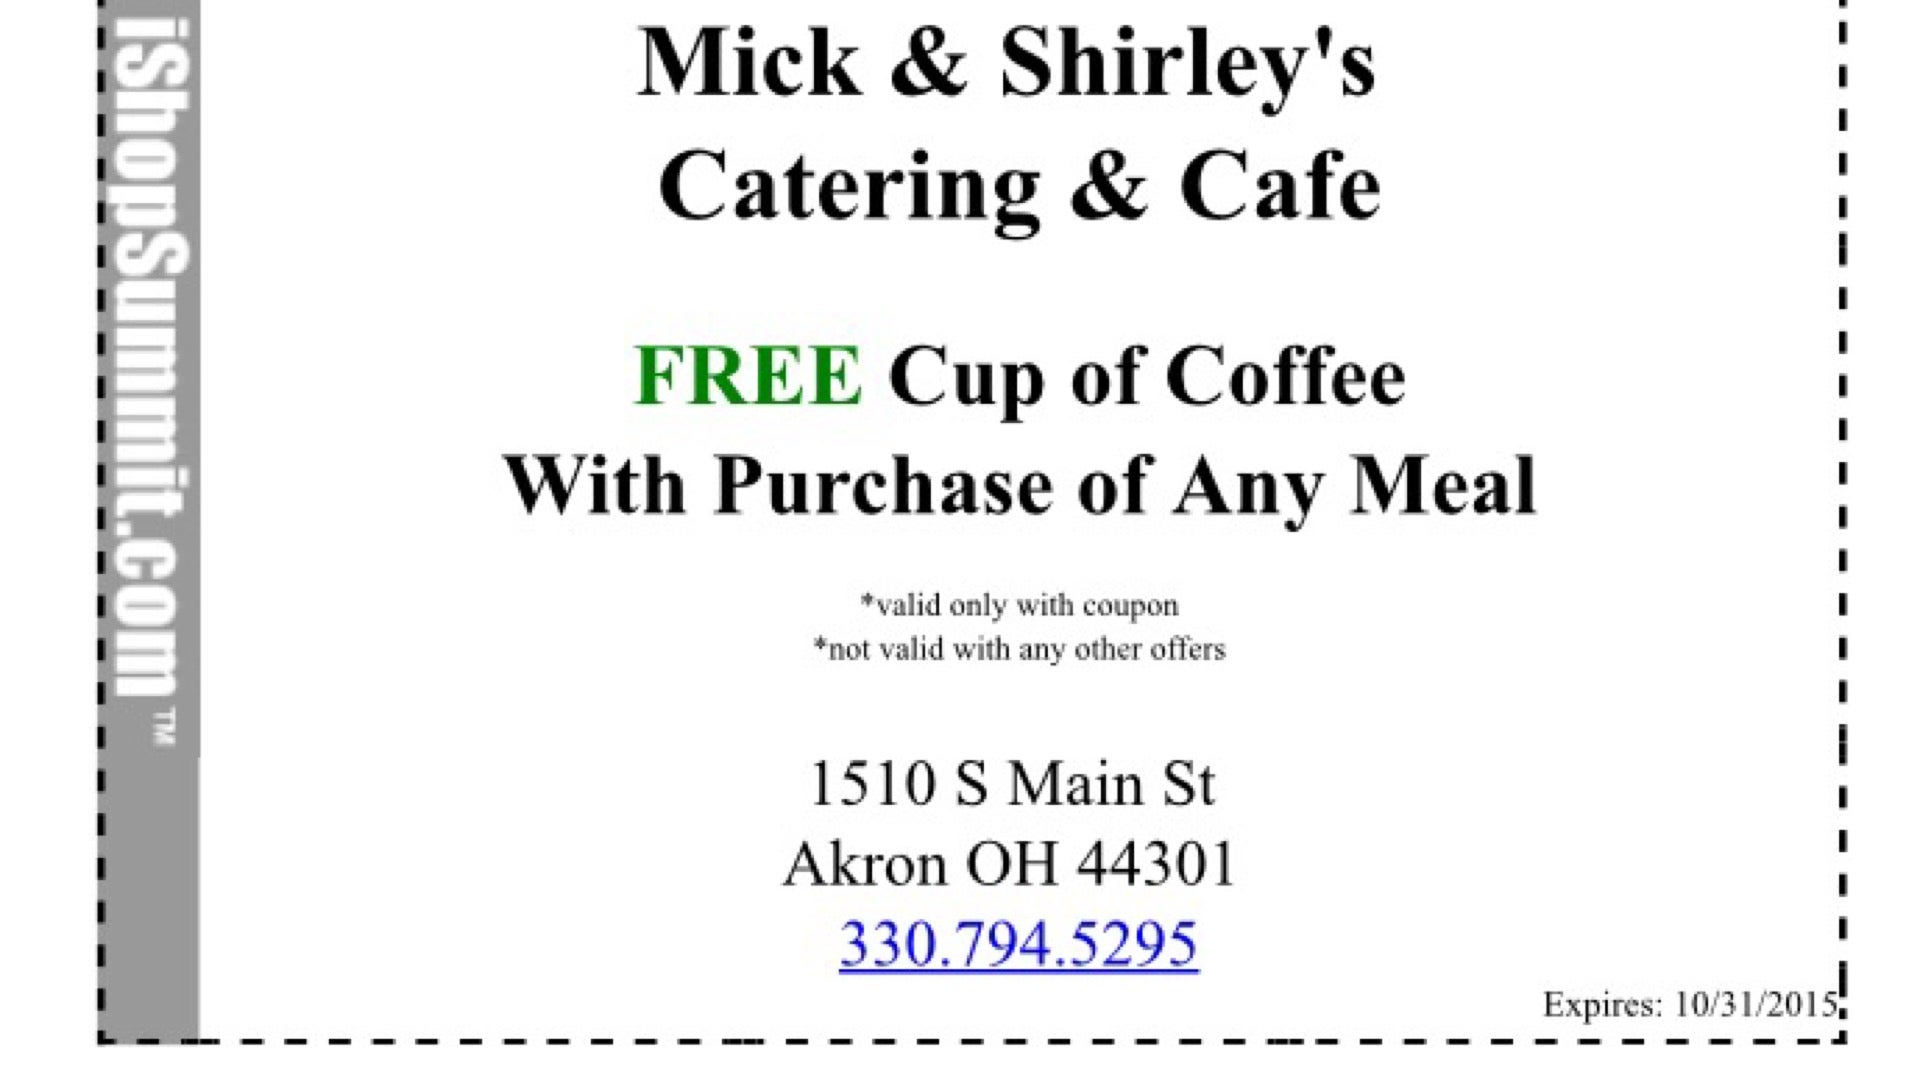 MICK & SHIRLEYS CATERING & CAFE,